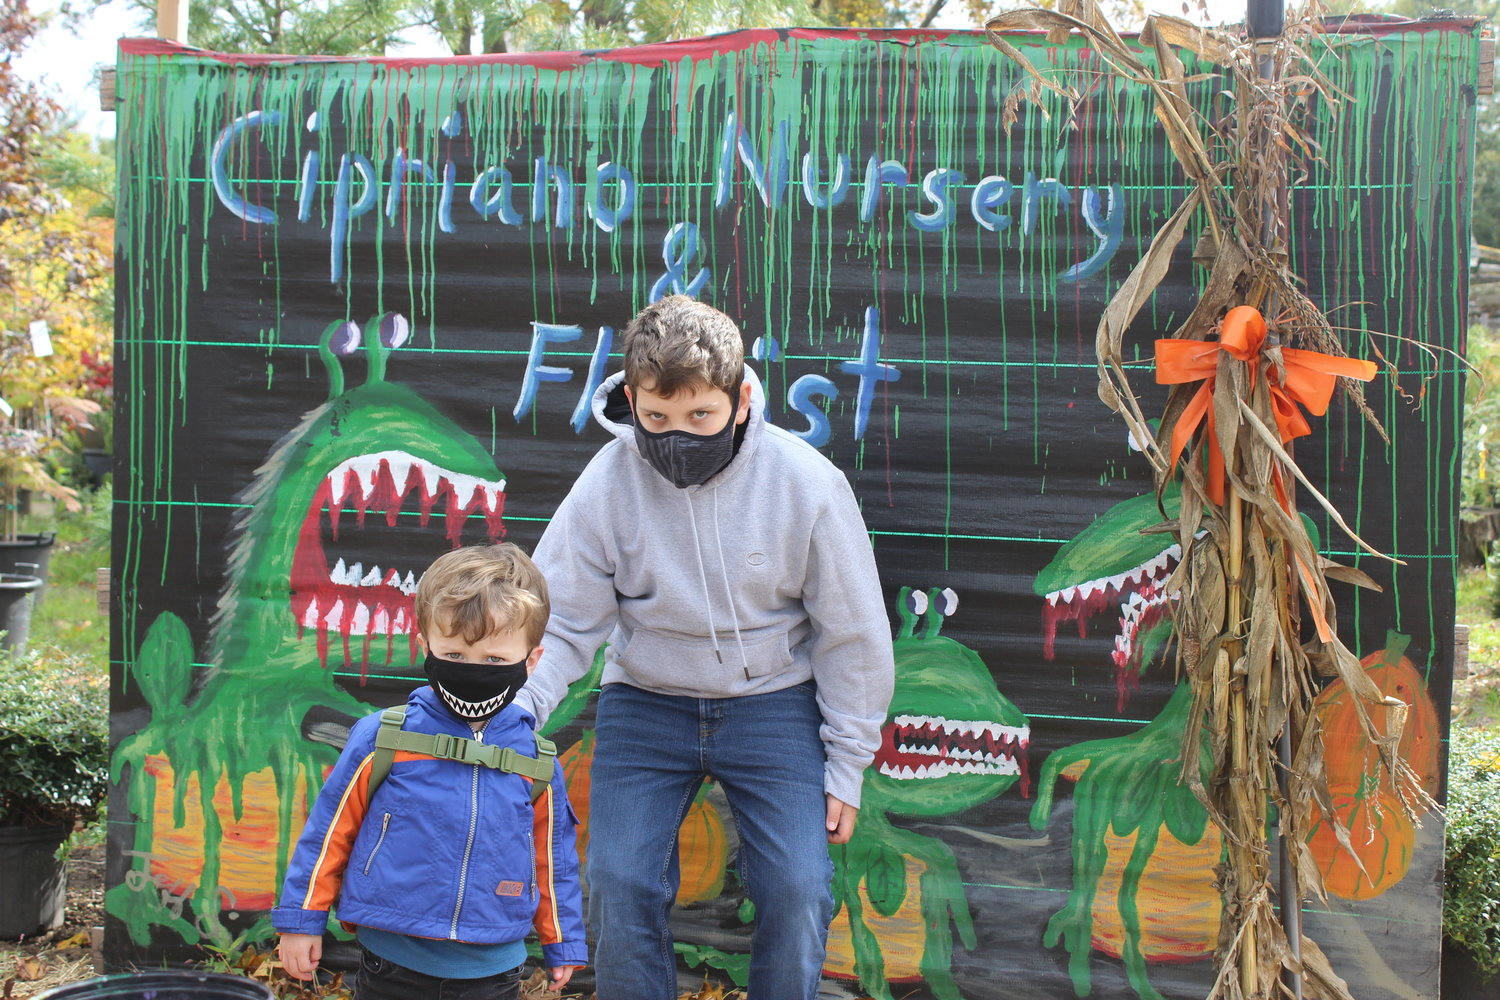 Connor Laico, 2, of East Meadow, fit perfectly in a spooky Halloween backdrop with his monster-smile mask. He was with his cousin Matthew, 10, also of East Meadow.